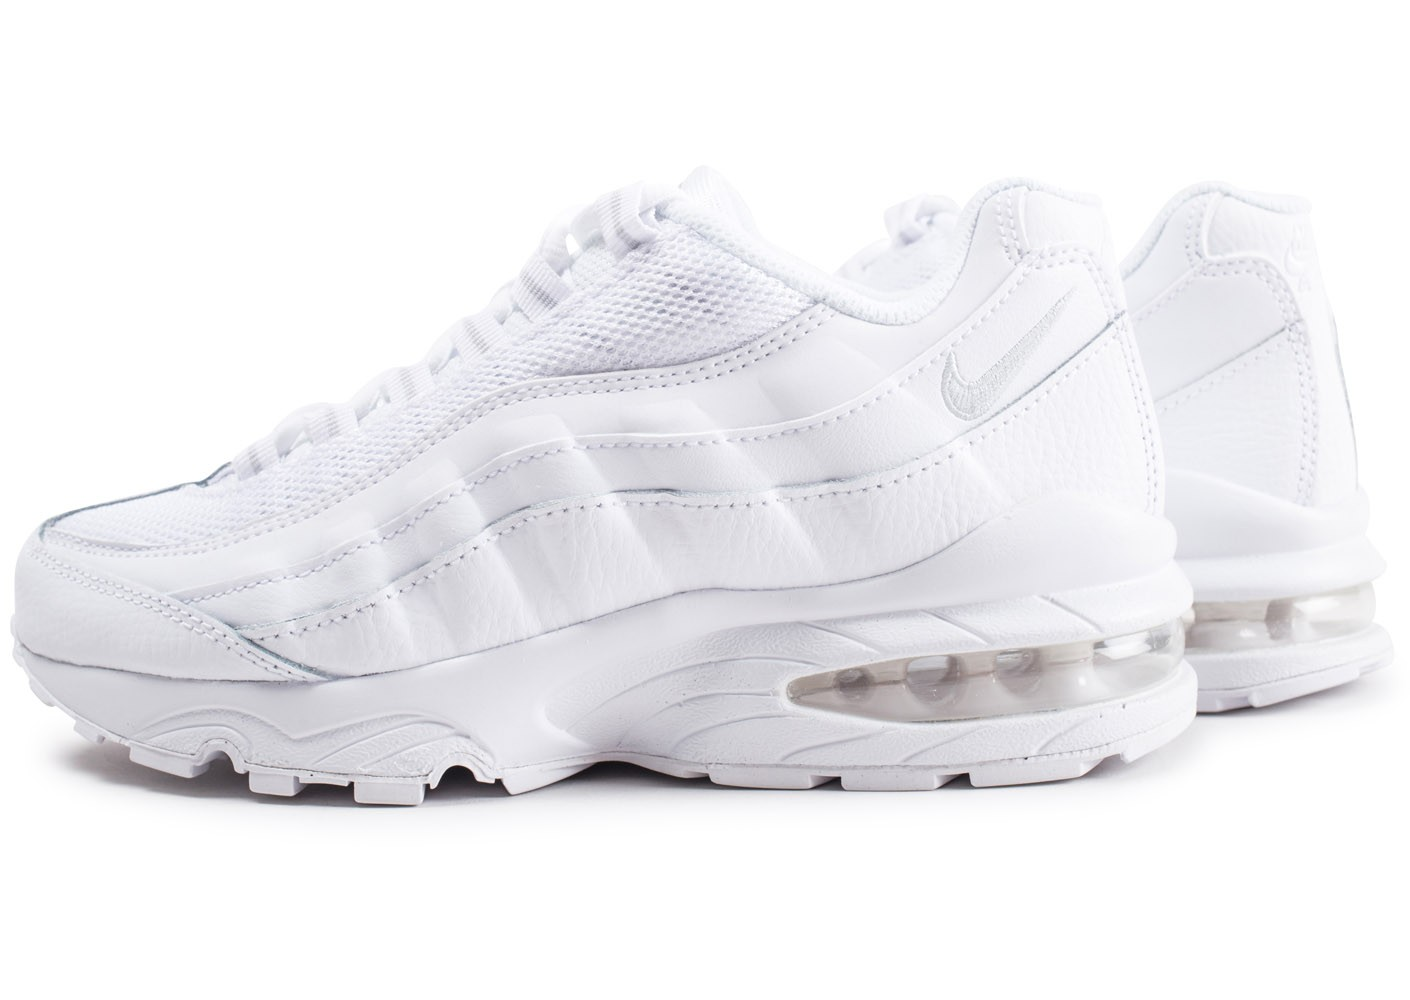 check out top quality affordable price air max 95 junior blanche